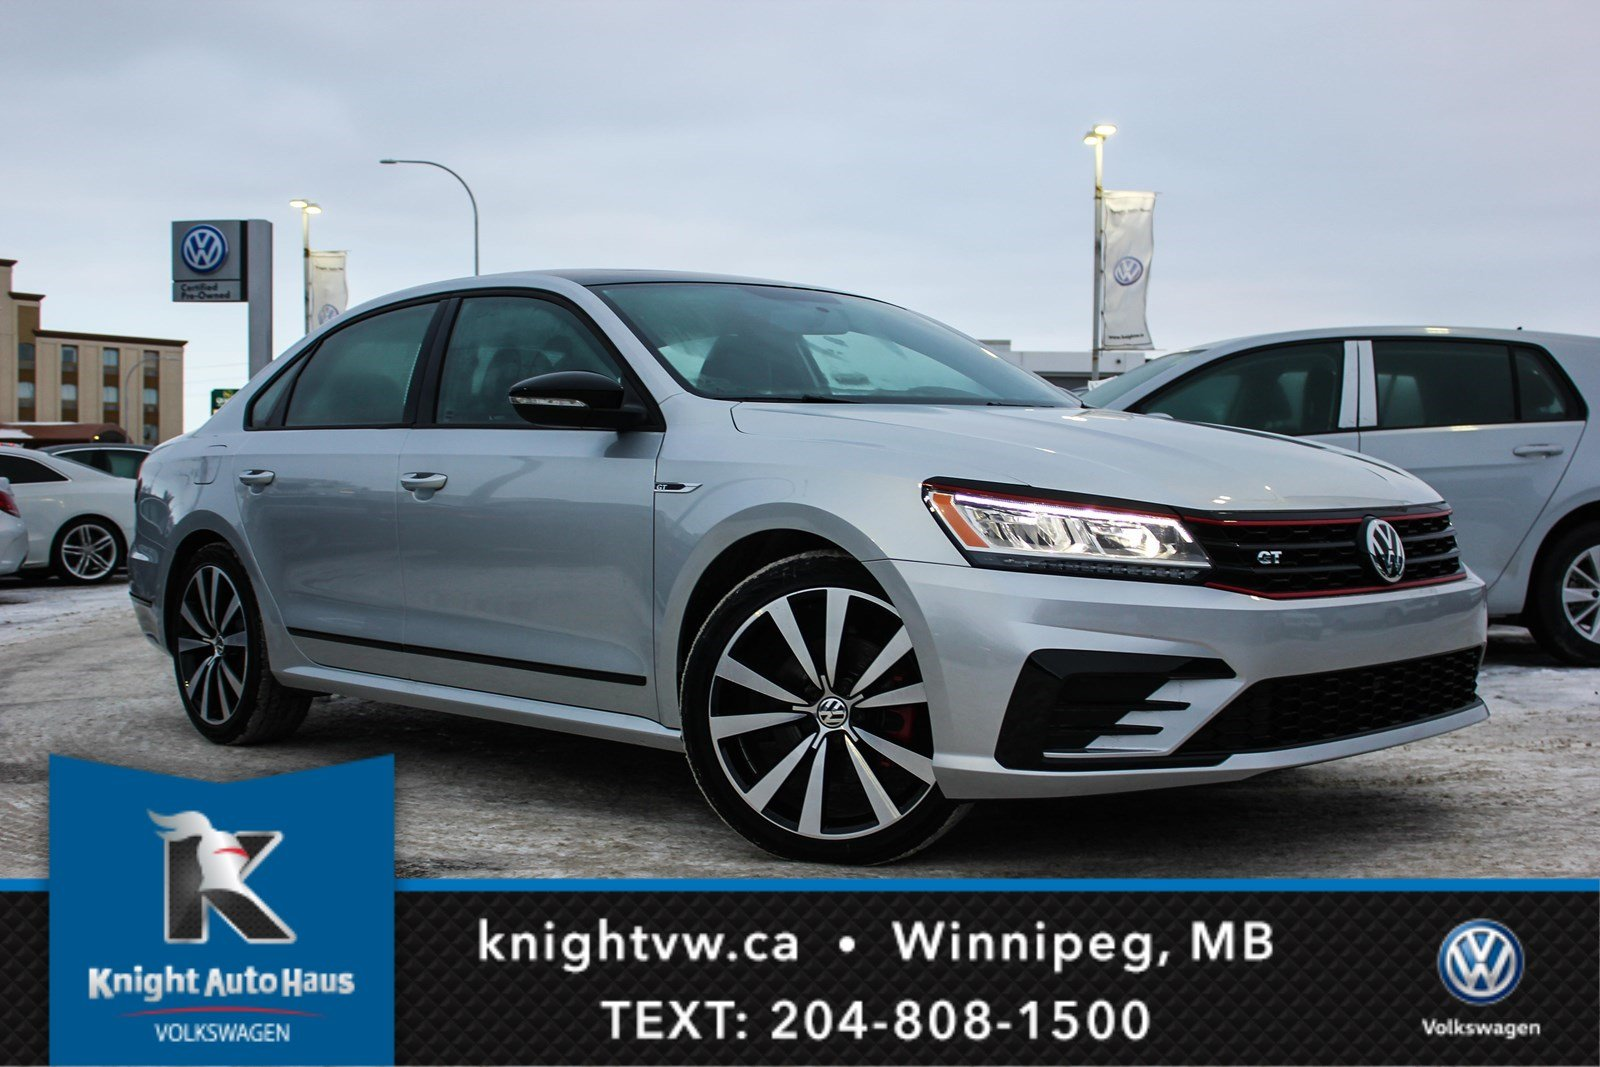 Certified Pre-Owned 2018 Volkswagen Passat GT w/Nav/Leather/Sunroof With 0.9% Financing Available OAC.